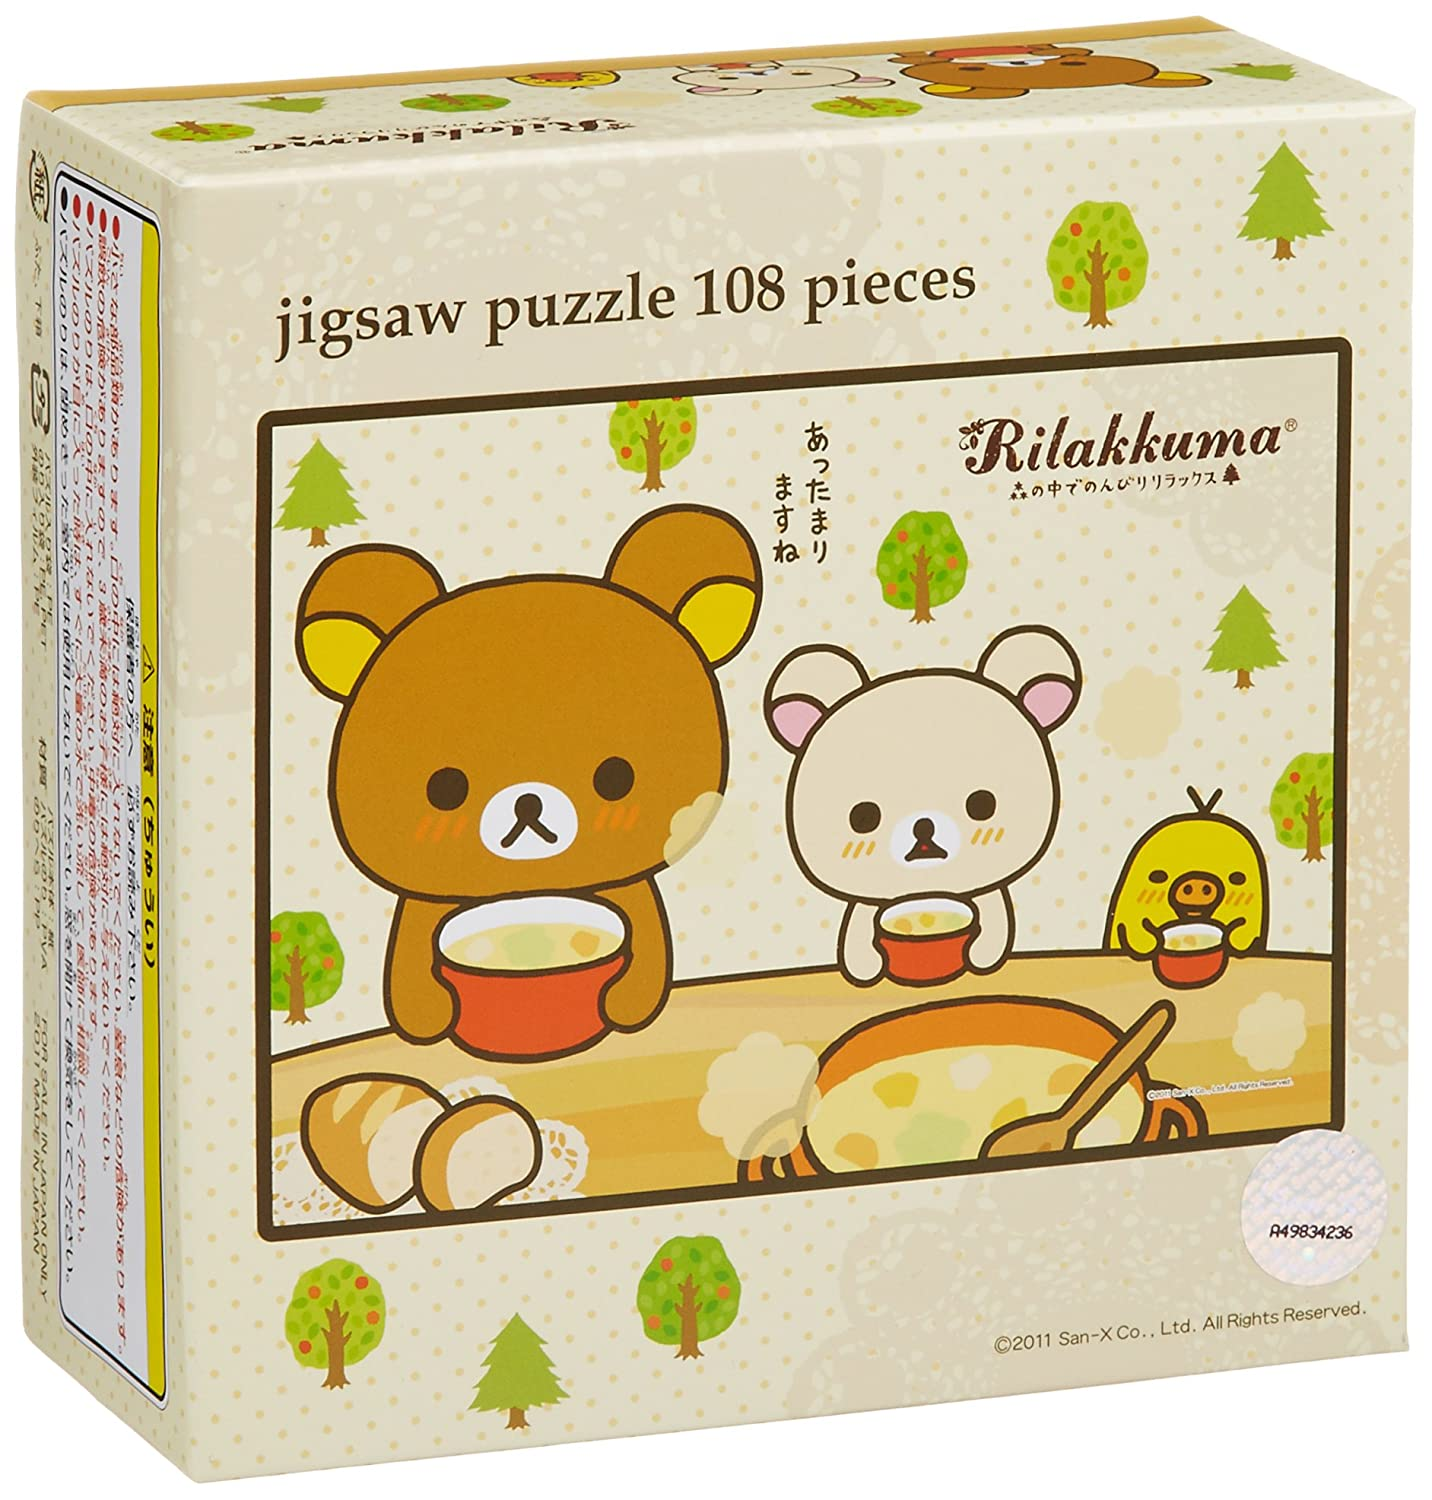 Rilakkuma 108 Piece 108502 and I will Attamari (Japan import   The package and the manual are written in Japanese)